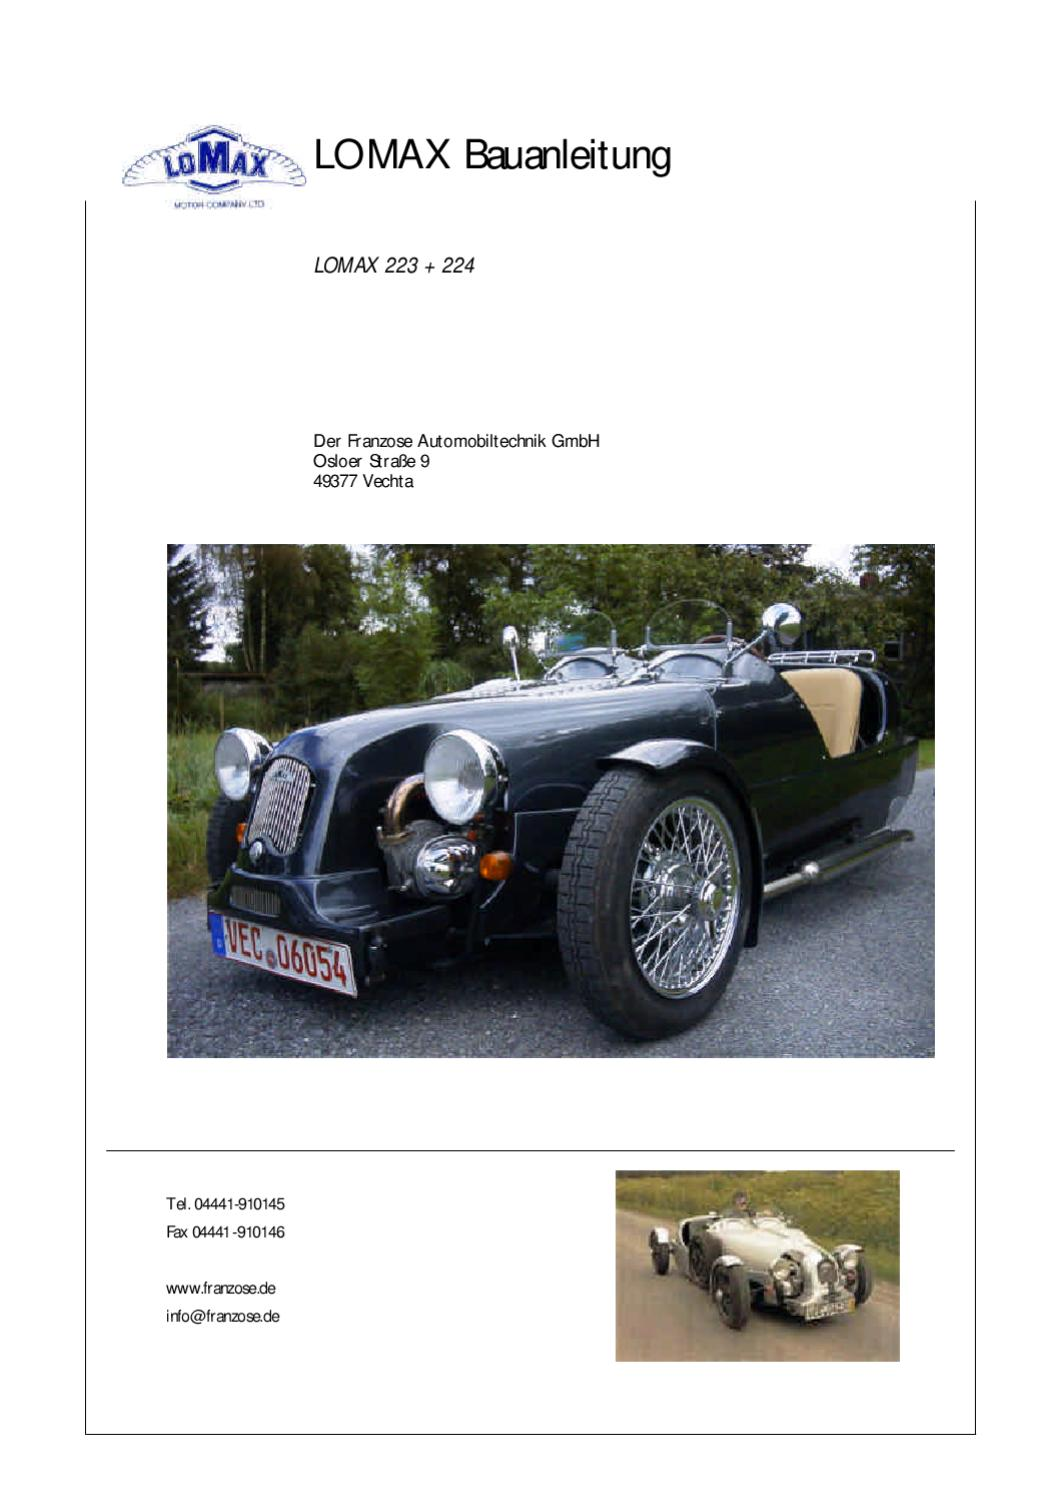 Lomax Bauanleitung by epsom green - issuu